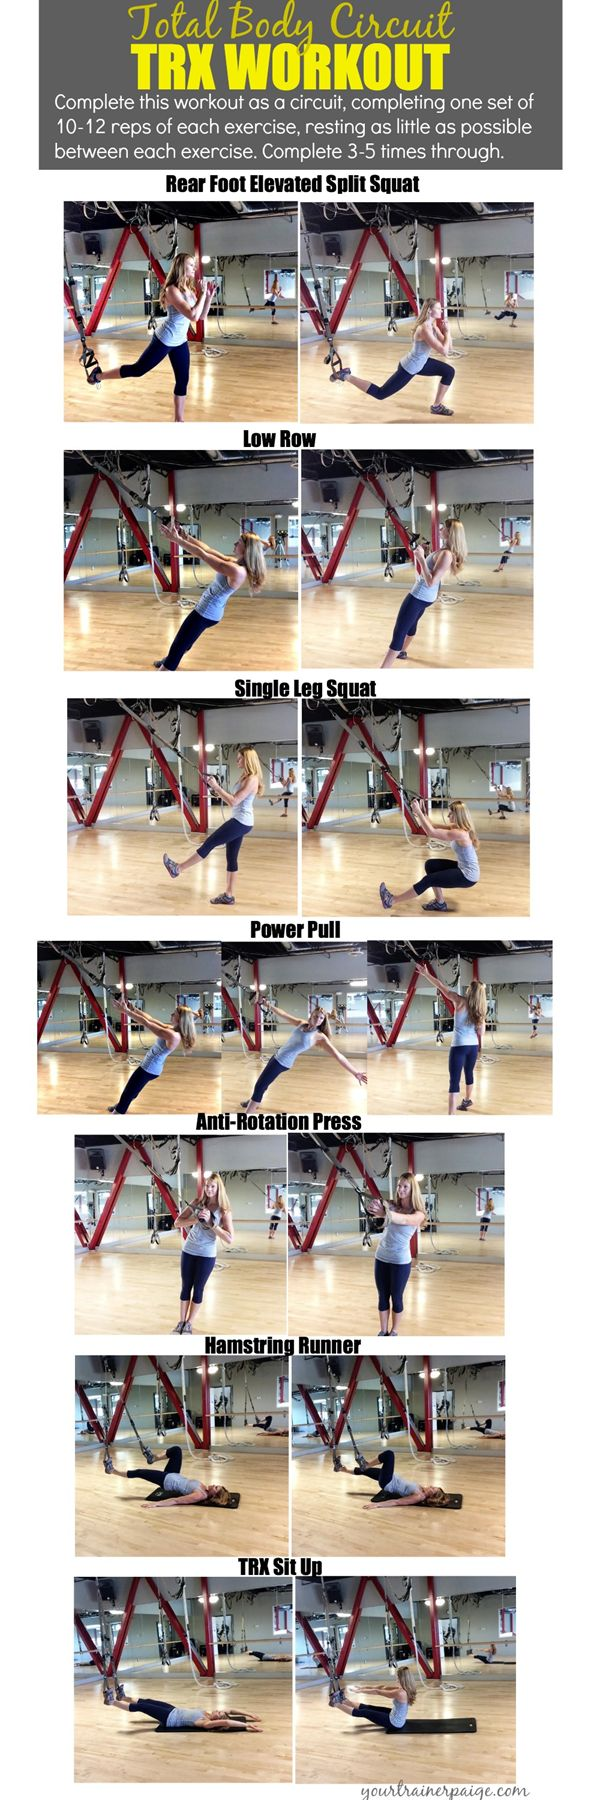 Total Body Circuit TRX Workout {Make Your Body Your Machine} - Your Trainer Paige - http://www.amazon.de/dp/B00RLH0M6C